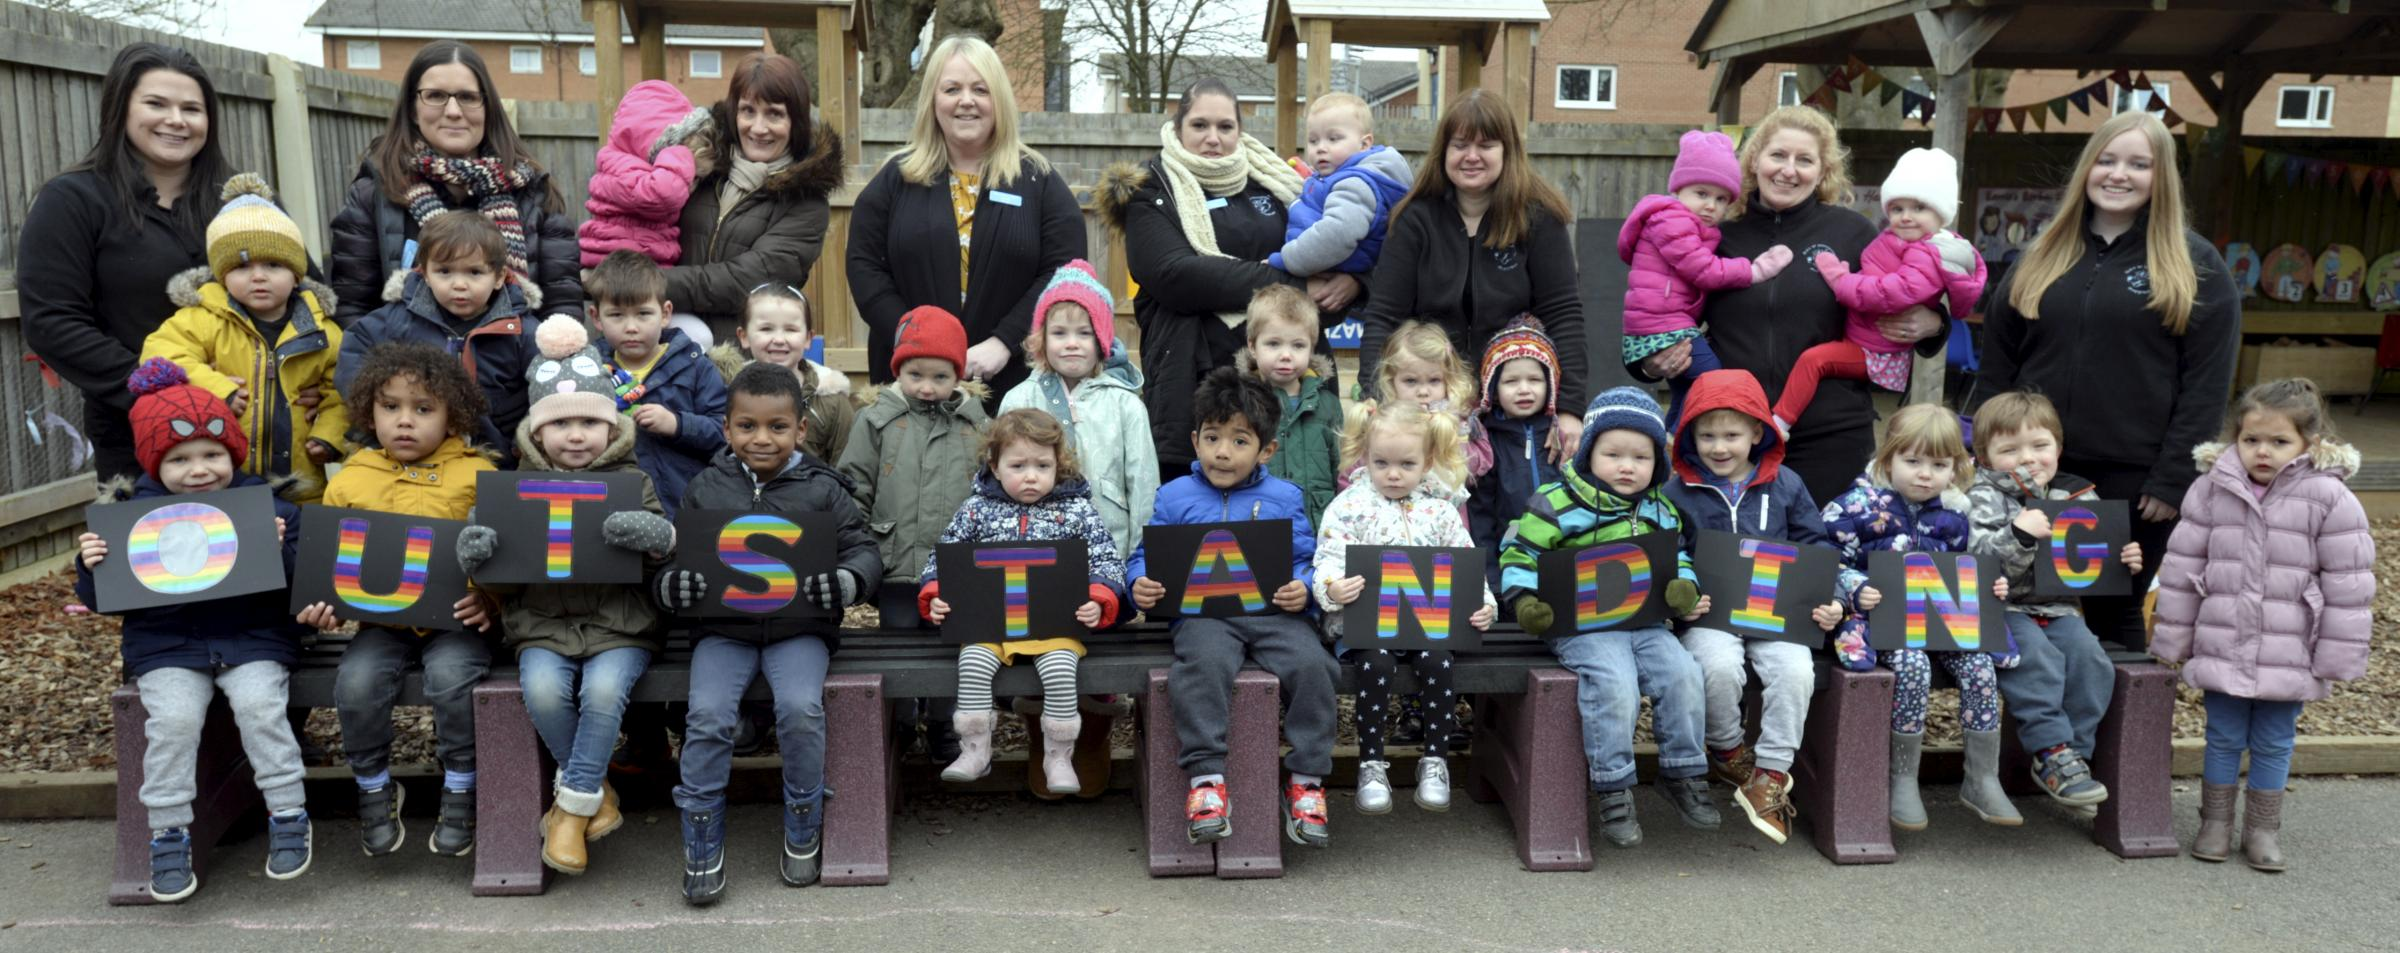 The Duke of Gloucester Playgroup at 29 Regiment RLC, Duke of Gloucester Barracks, South Cerney,which has been awarded an outstanding Ofsted